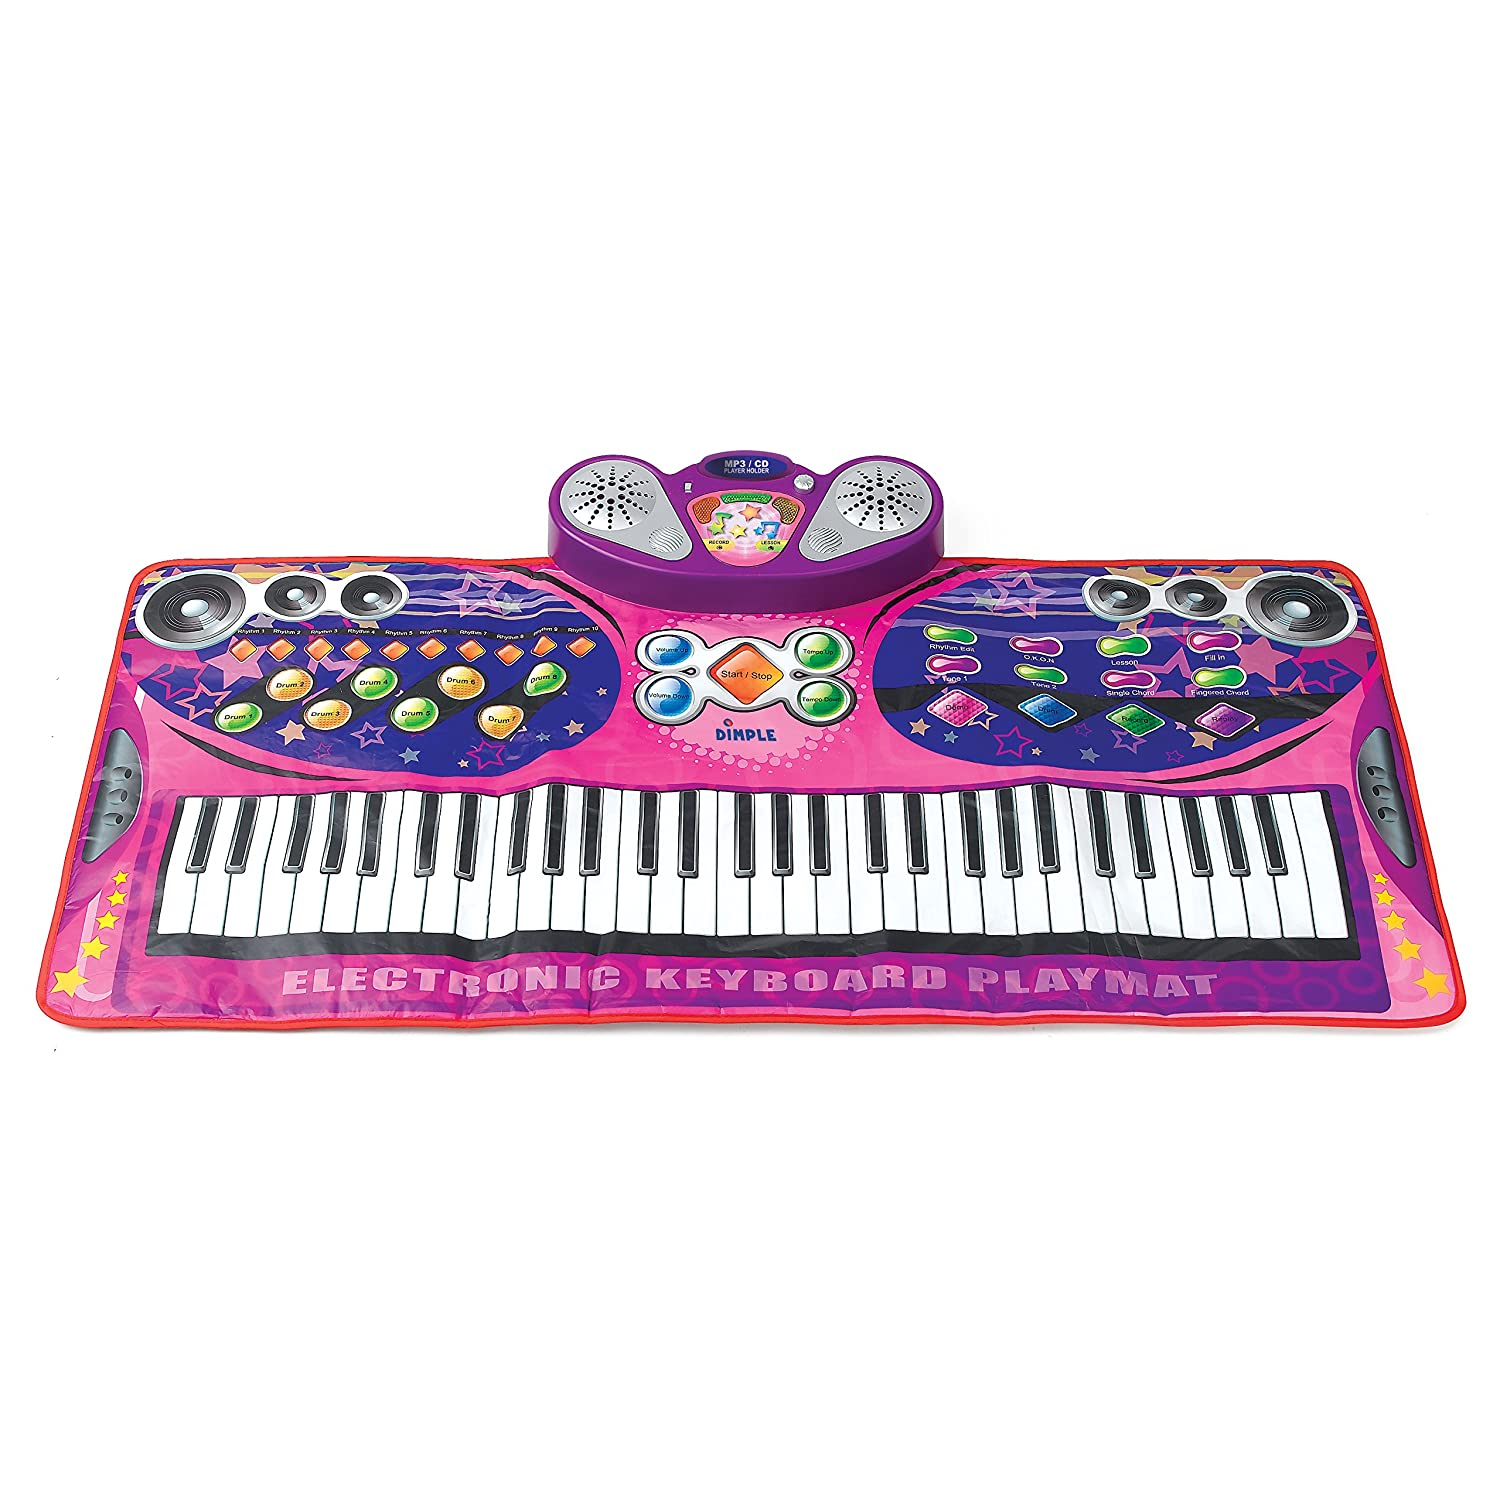 Jumbo Sized Animal Carnival Musical Playmat 3 Modes To Play 10 Flashing Led Lights Cheerful Childrens Songs